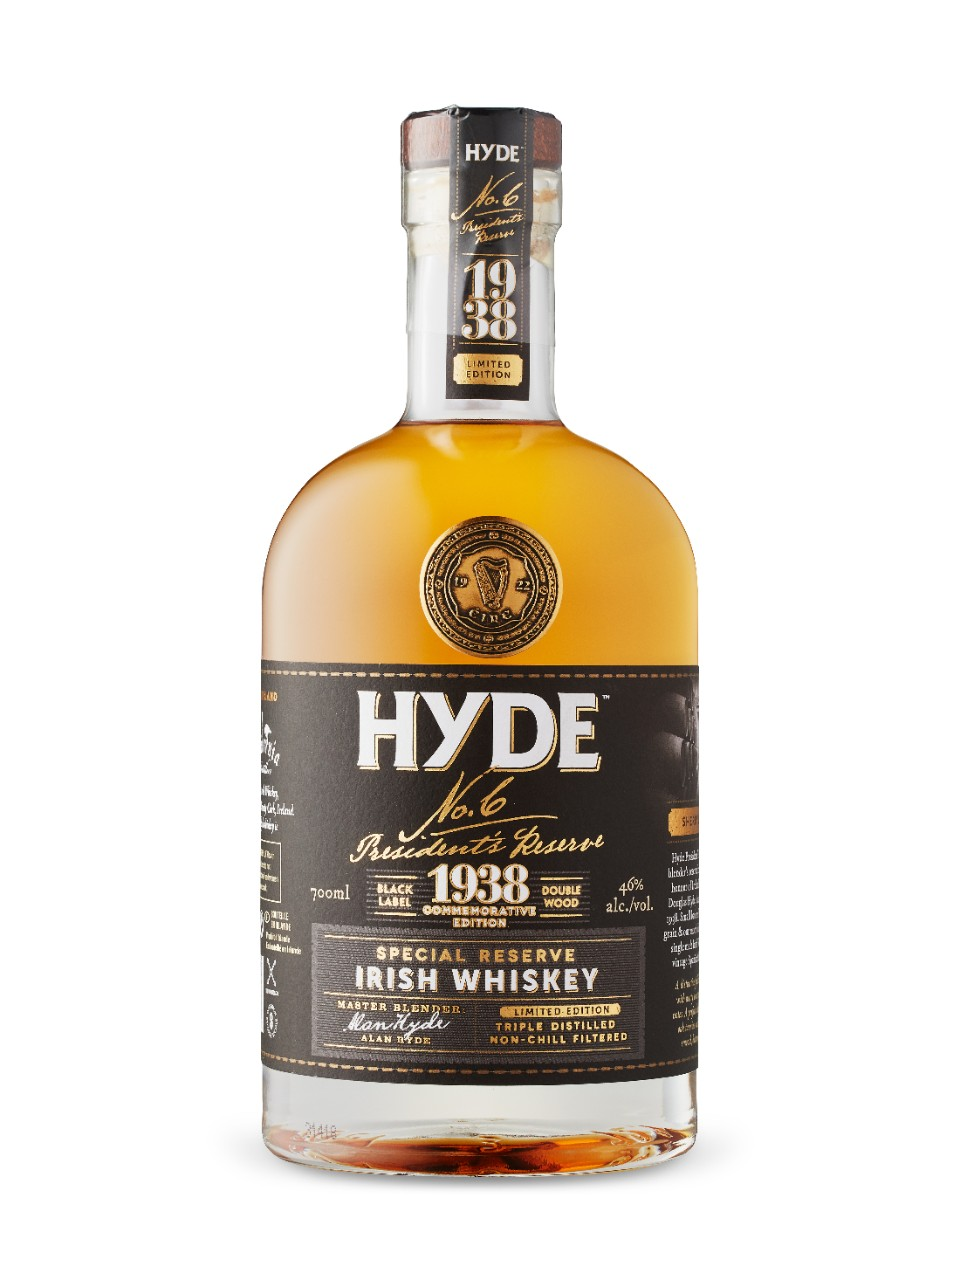 1938 Hyde Sherry Cask Finish Irish Whiskey from LCBO